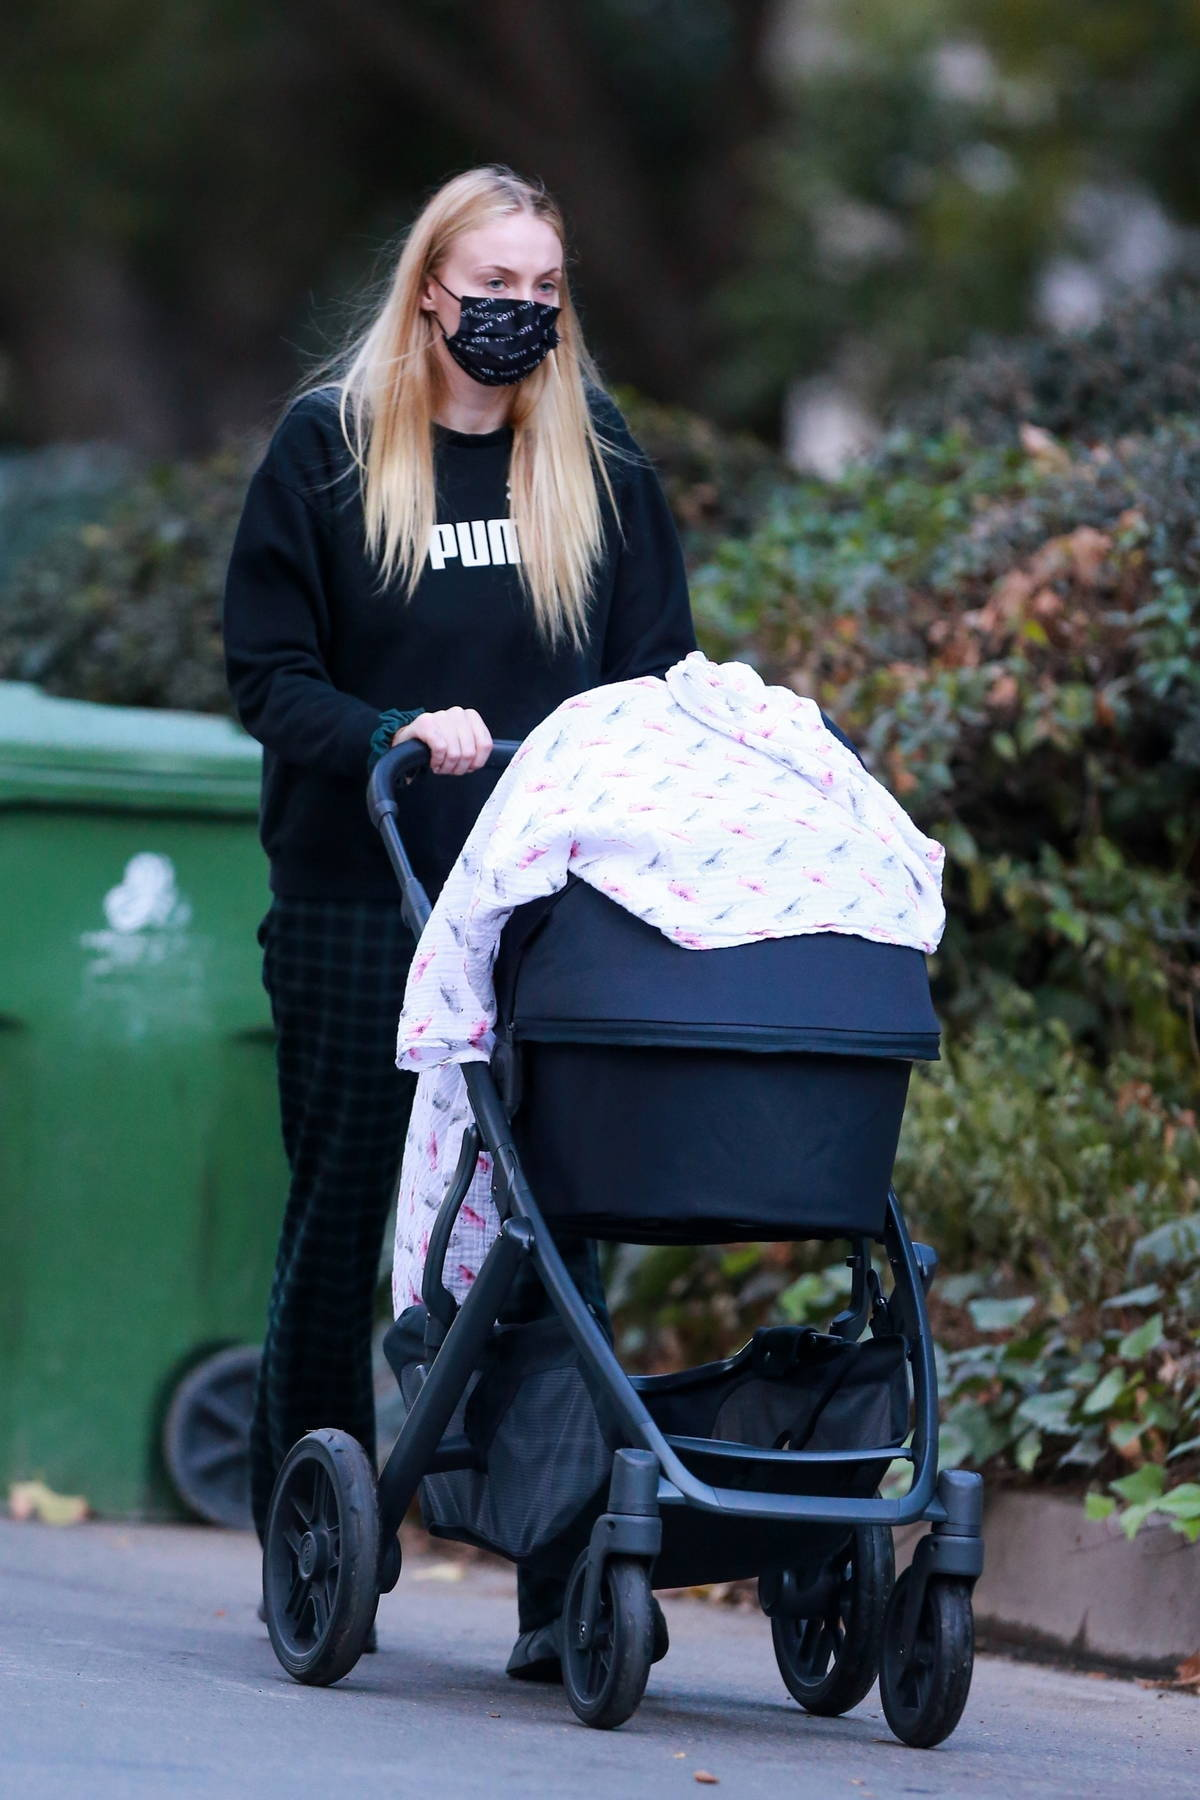 Sophie Turner takes her baby girl Willa out for an afternoon walk near her home in Los Angeles